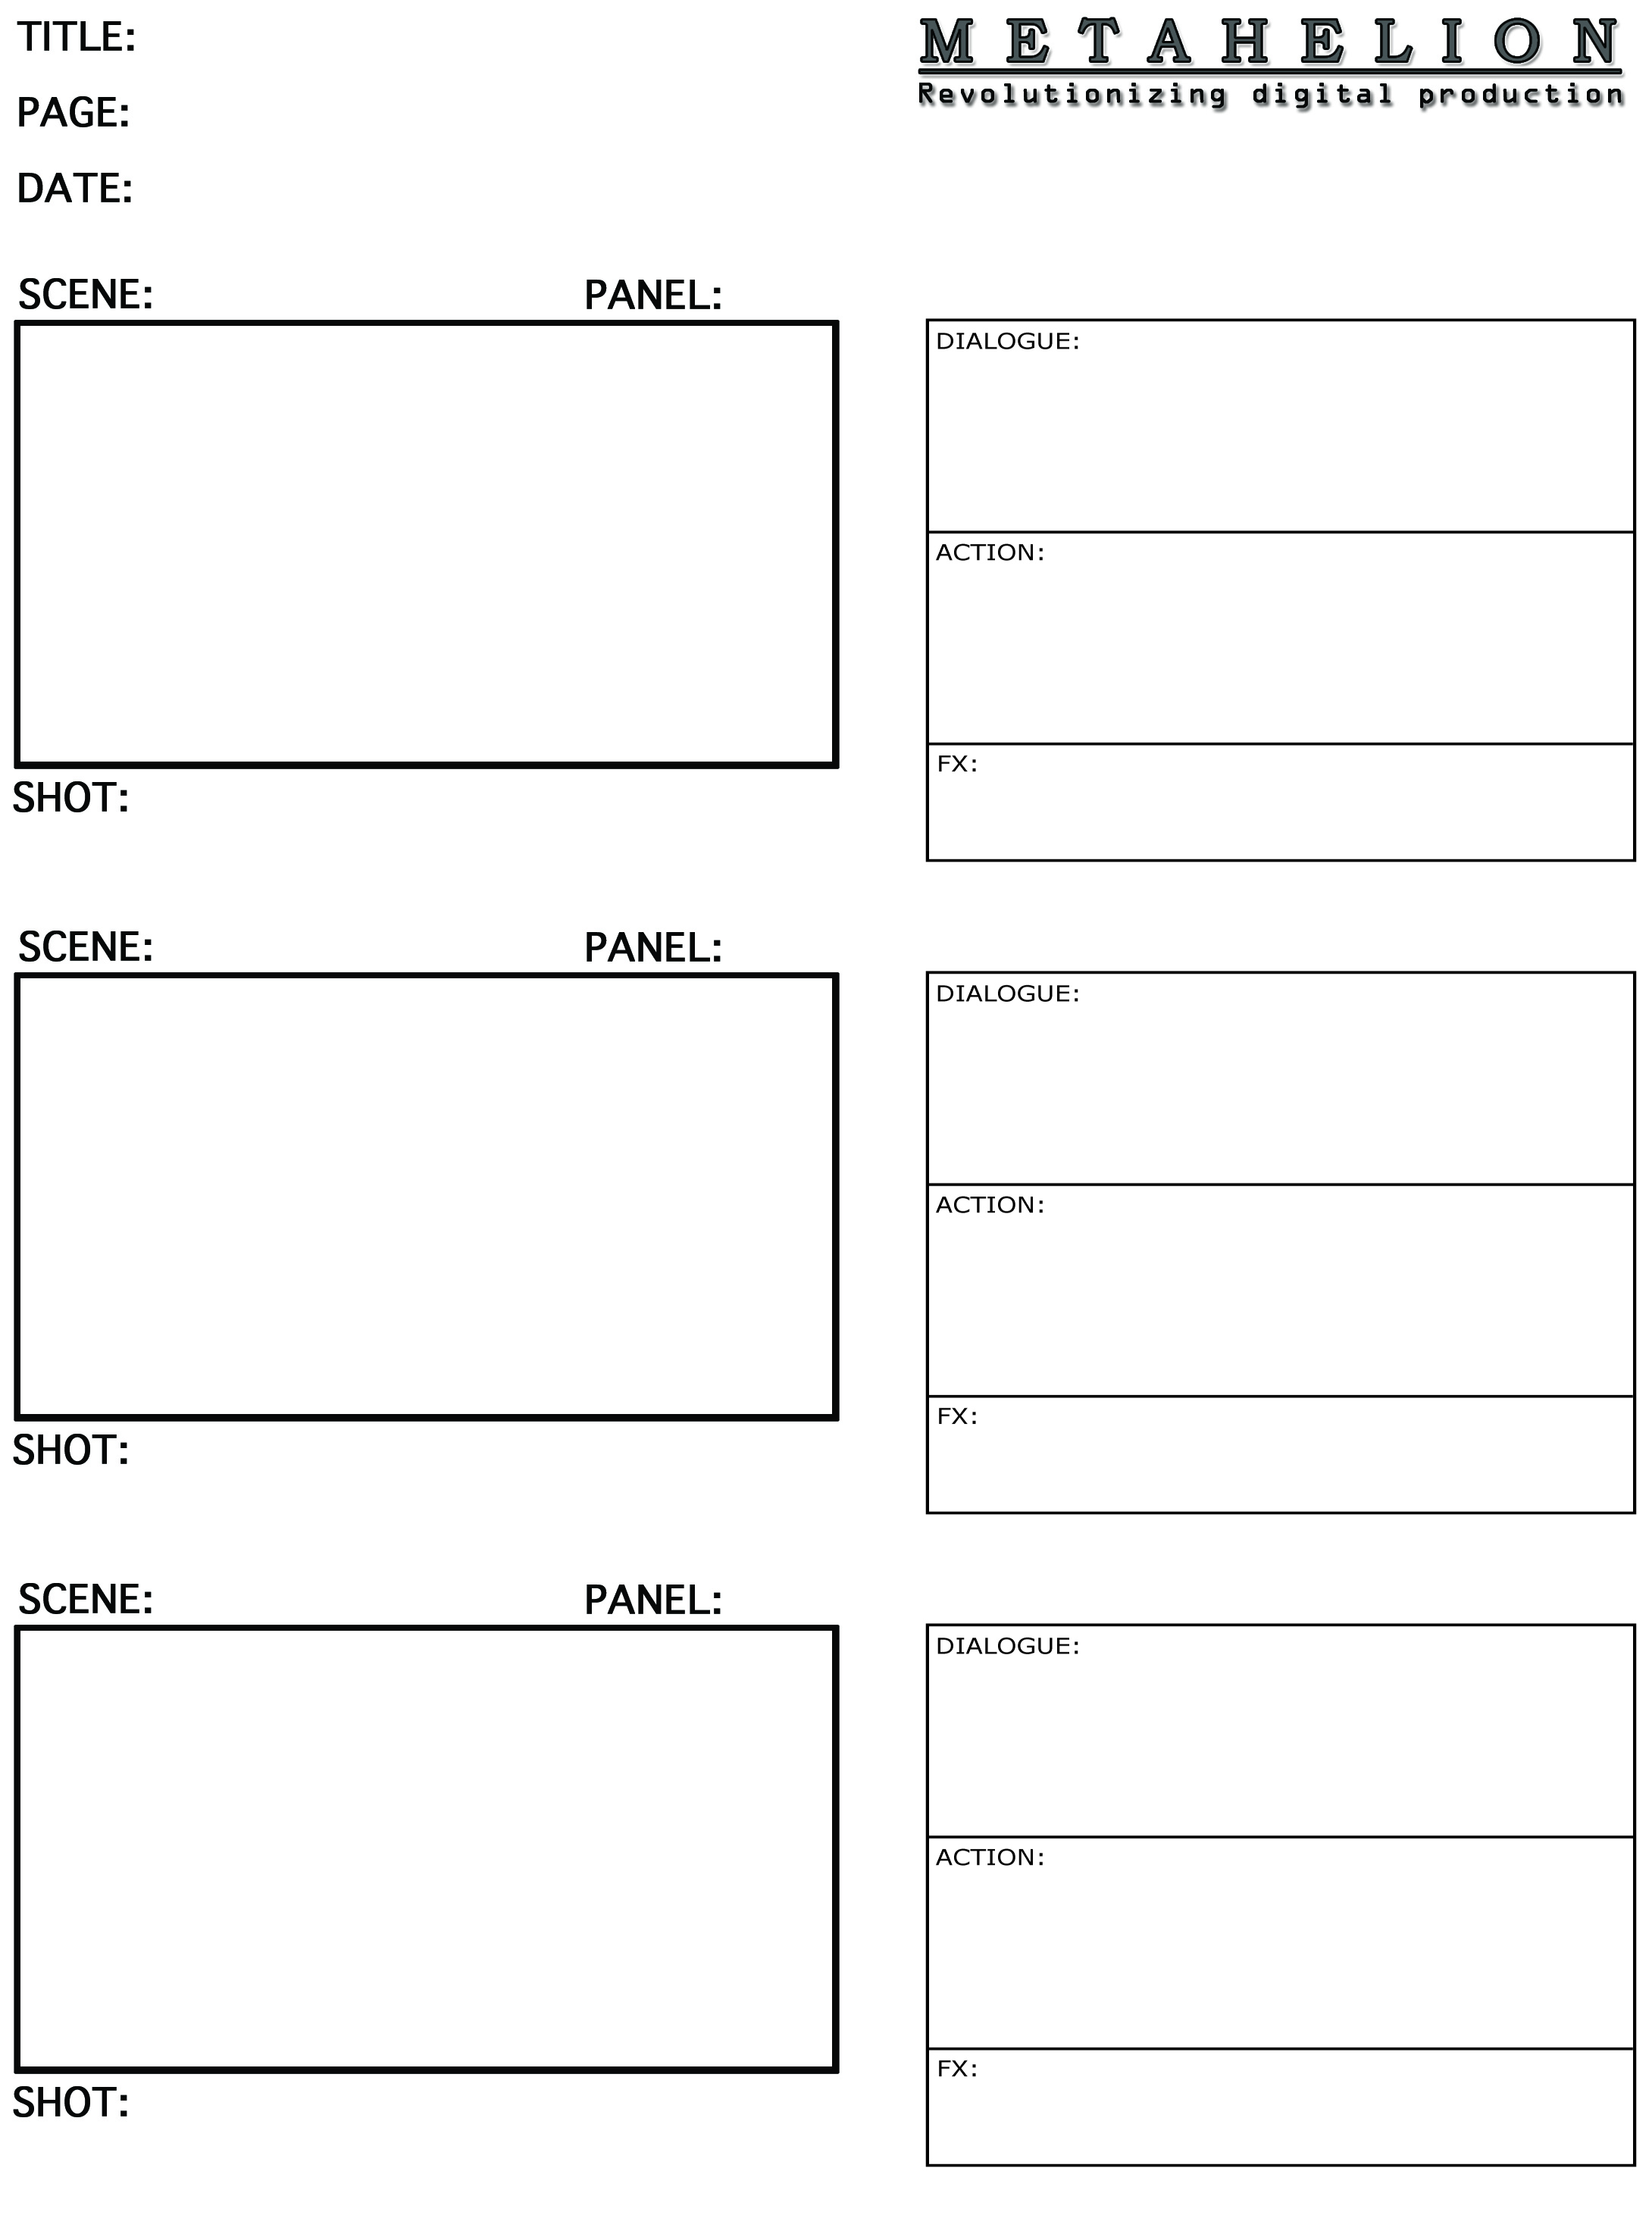 Storyboard Templates = Metahelion Digital